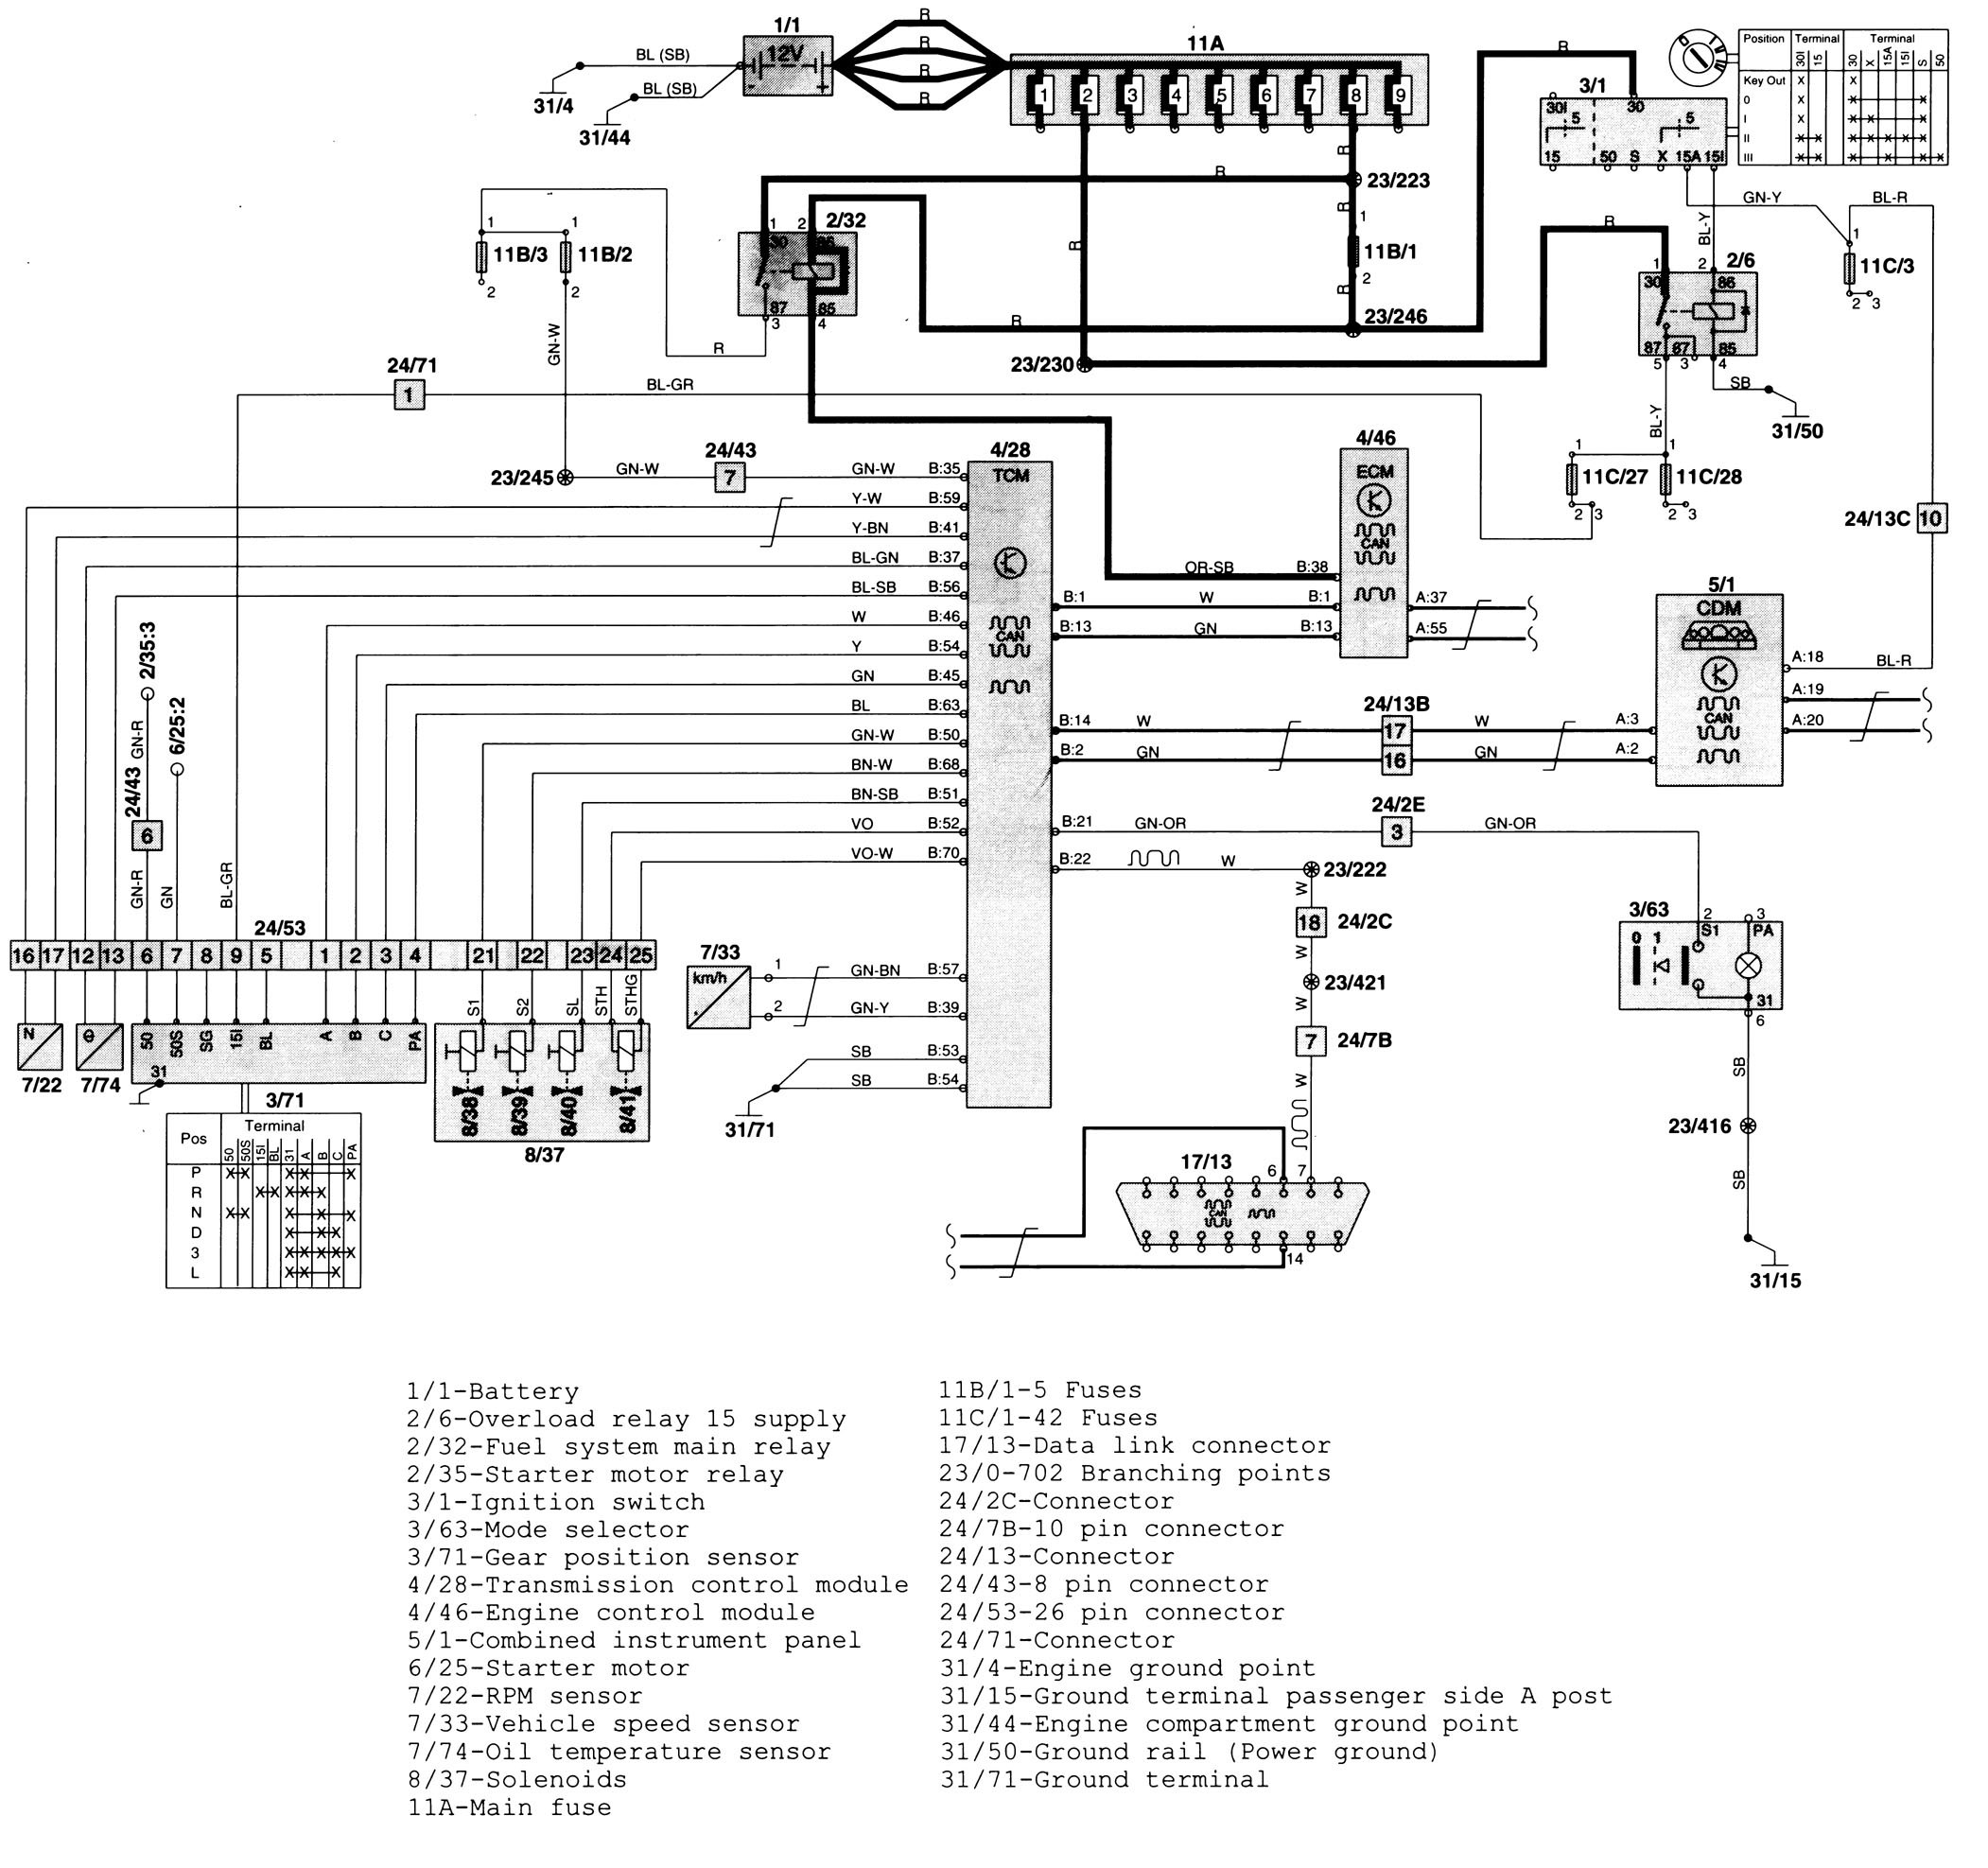 volvo c70 wiring diagram transmission controls 1999 volvo c70 (1999) wiring diagrams transmission controls volvo c70 2001 wiring diagram at gsmx.co